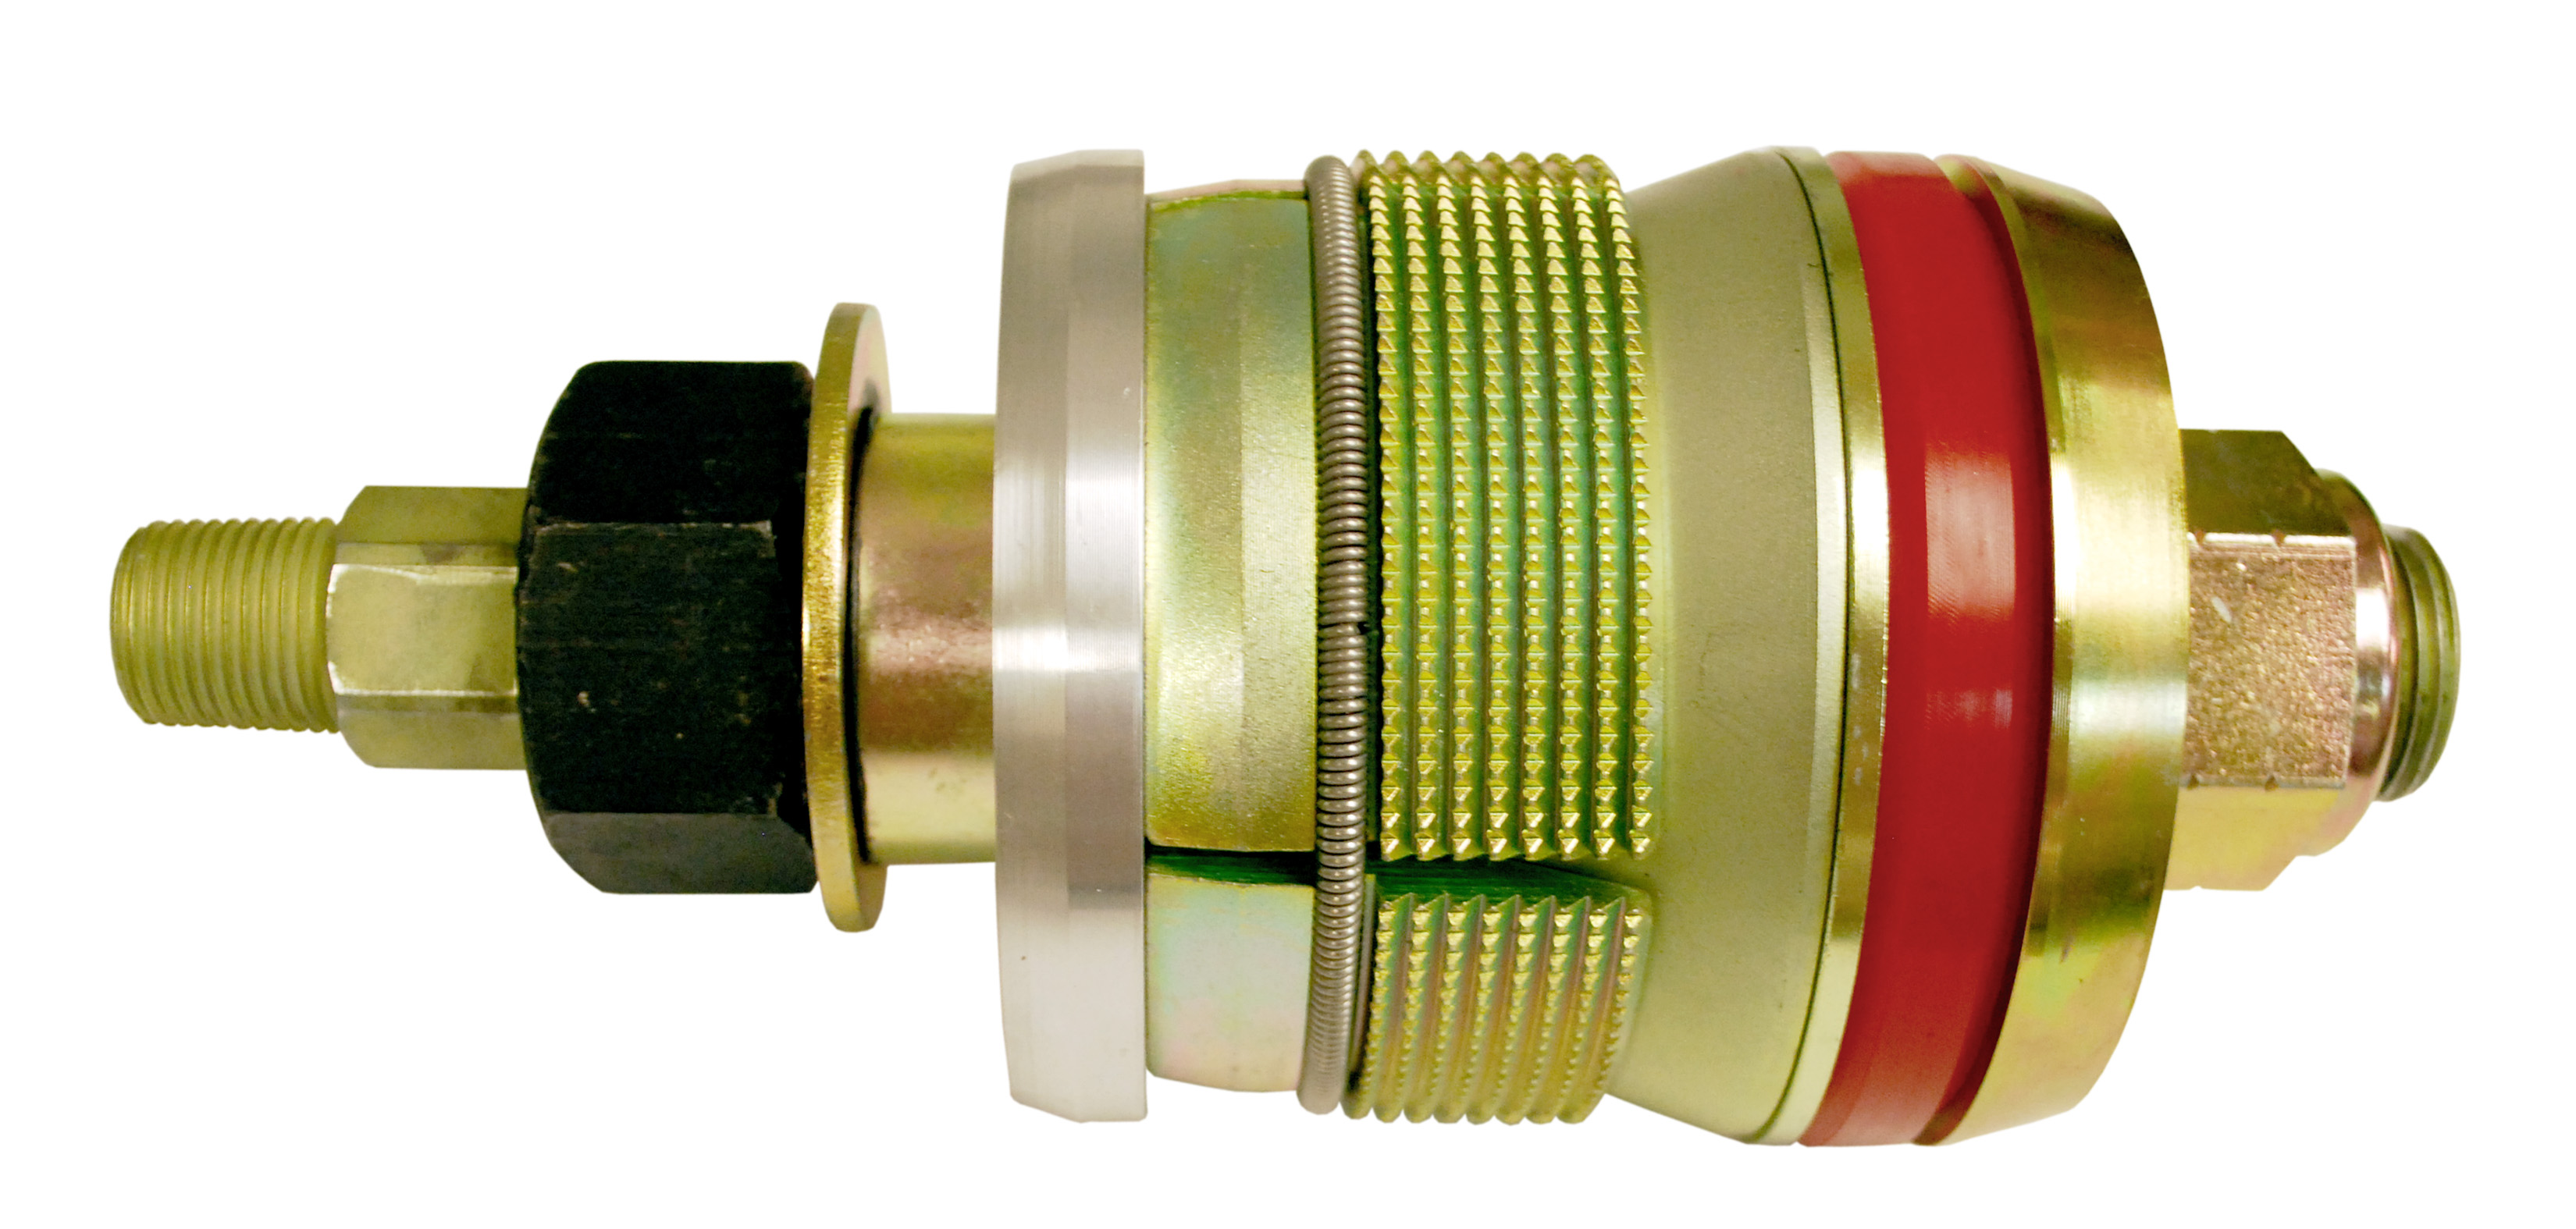 Griptight high pressure test plug technical brief